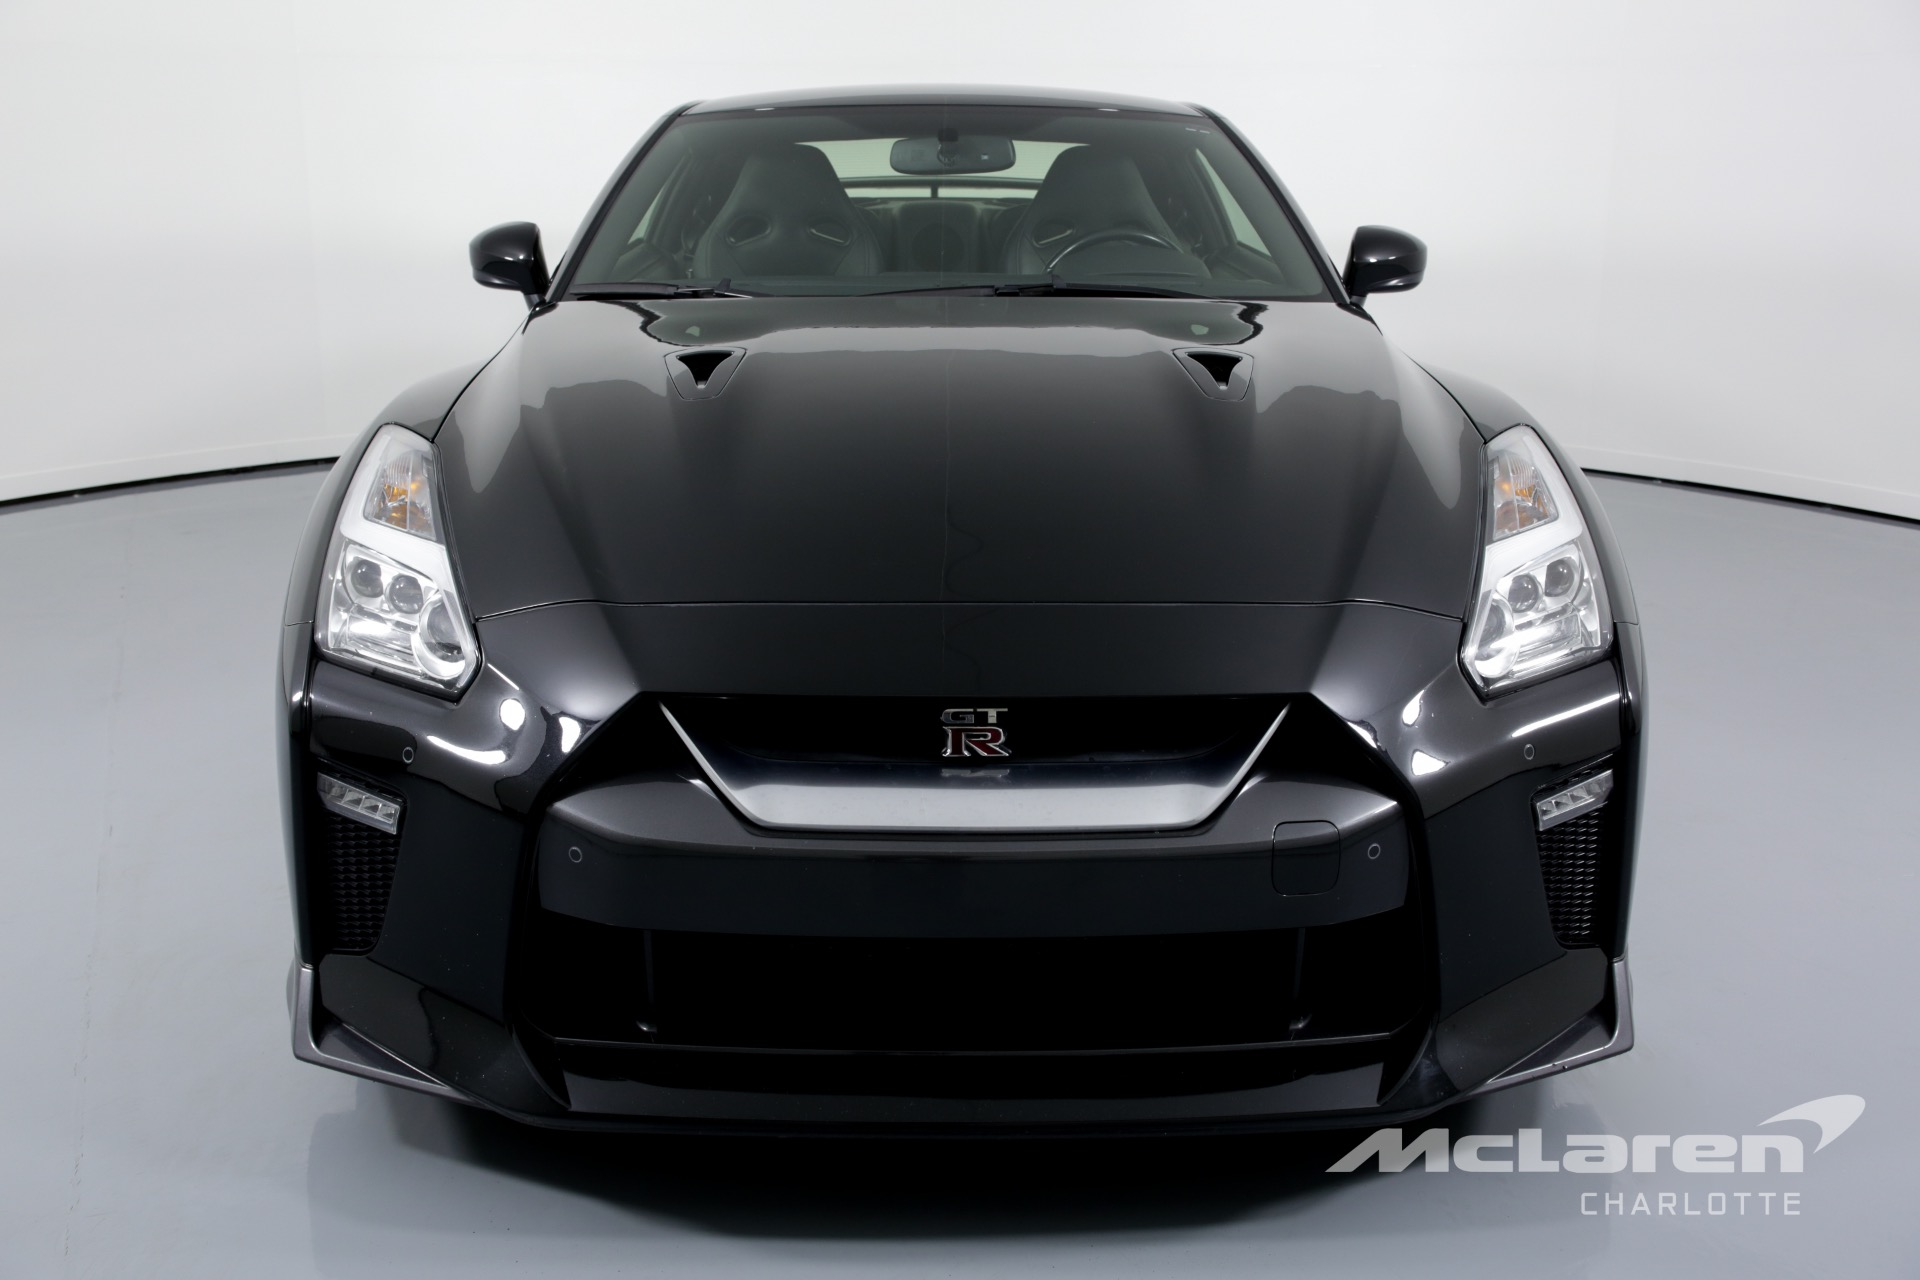 Used Nissan Gt-r for Sale Awesome Used 2017 Nissan Gt R Premium for Sale $92 500